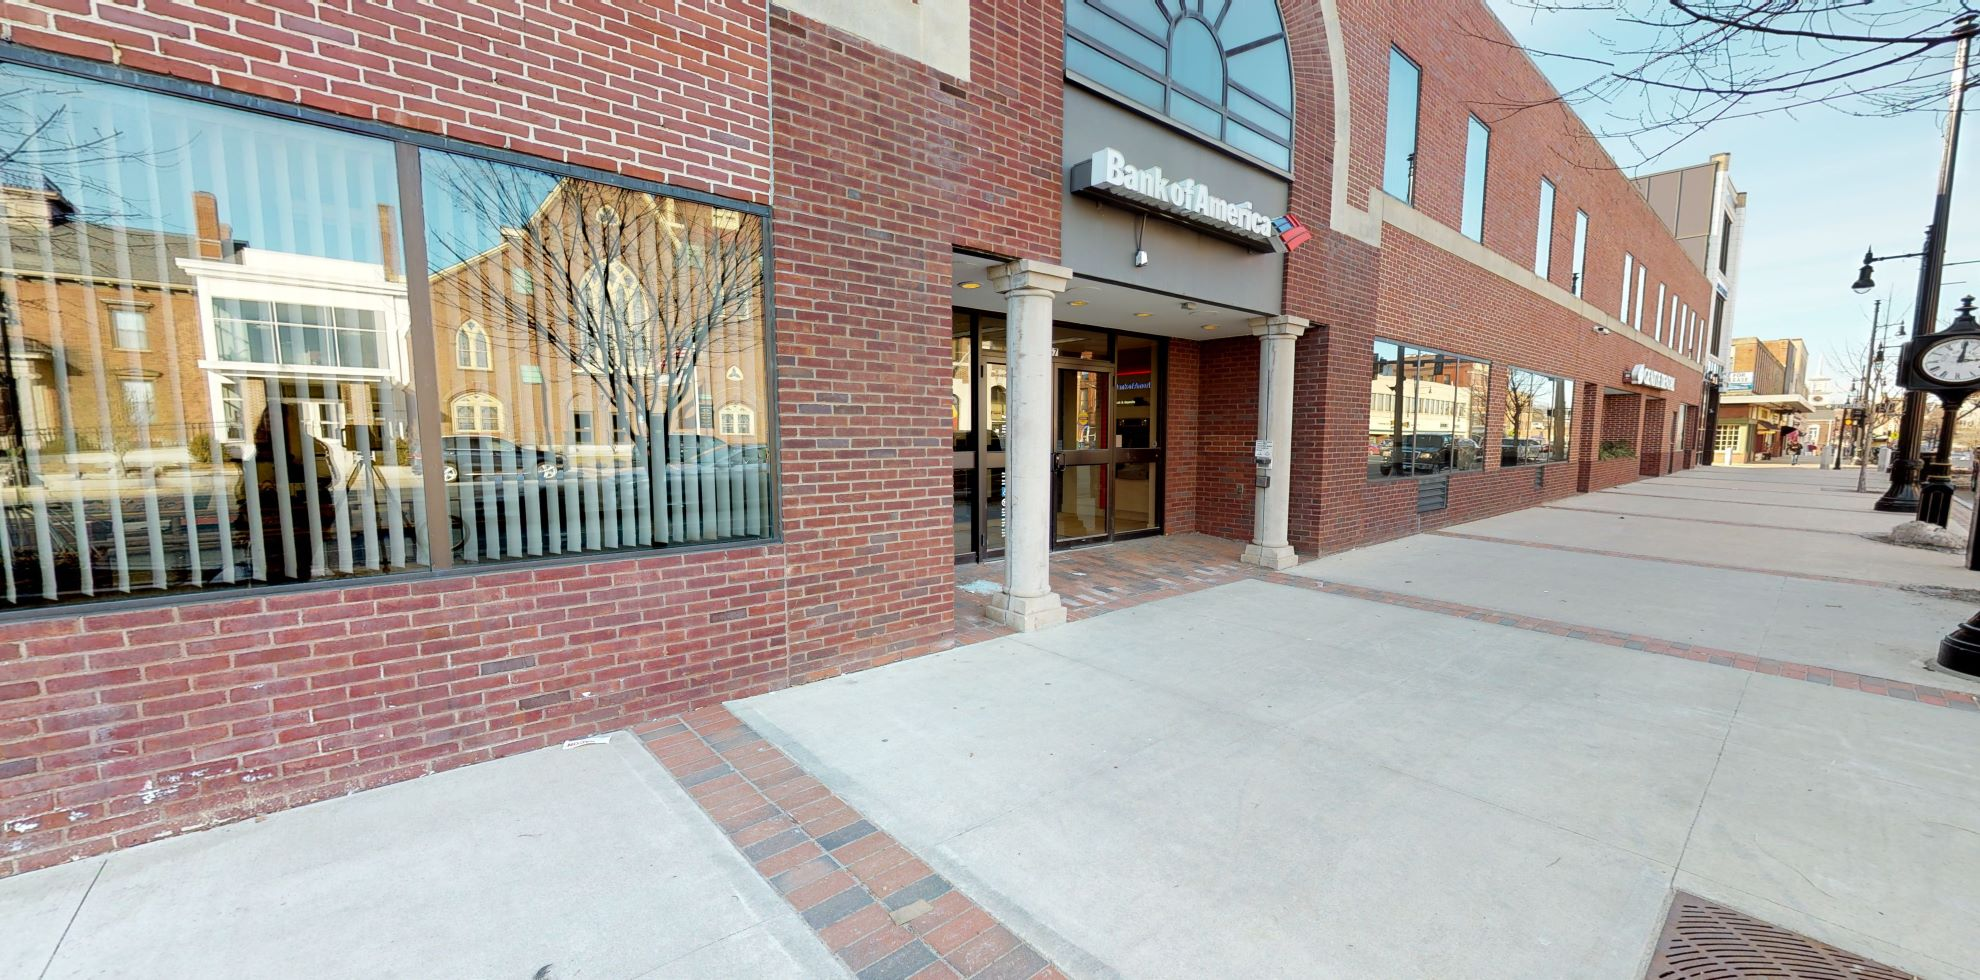 Bank of America financial center with walk-up ATM   157 Main St, Nashua, NH 03060